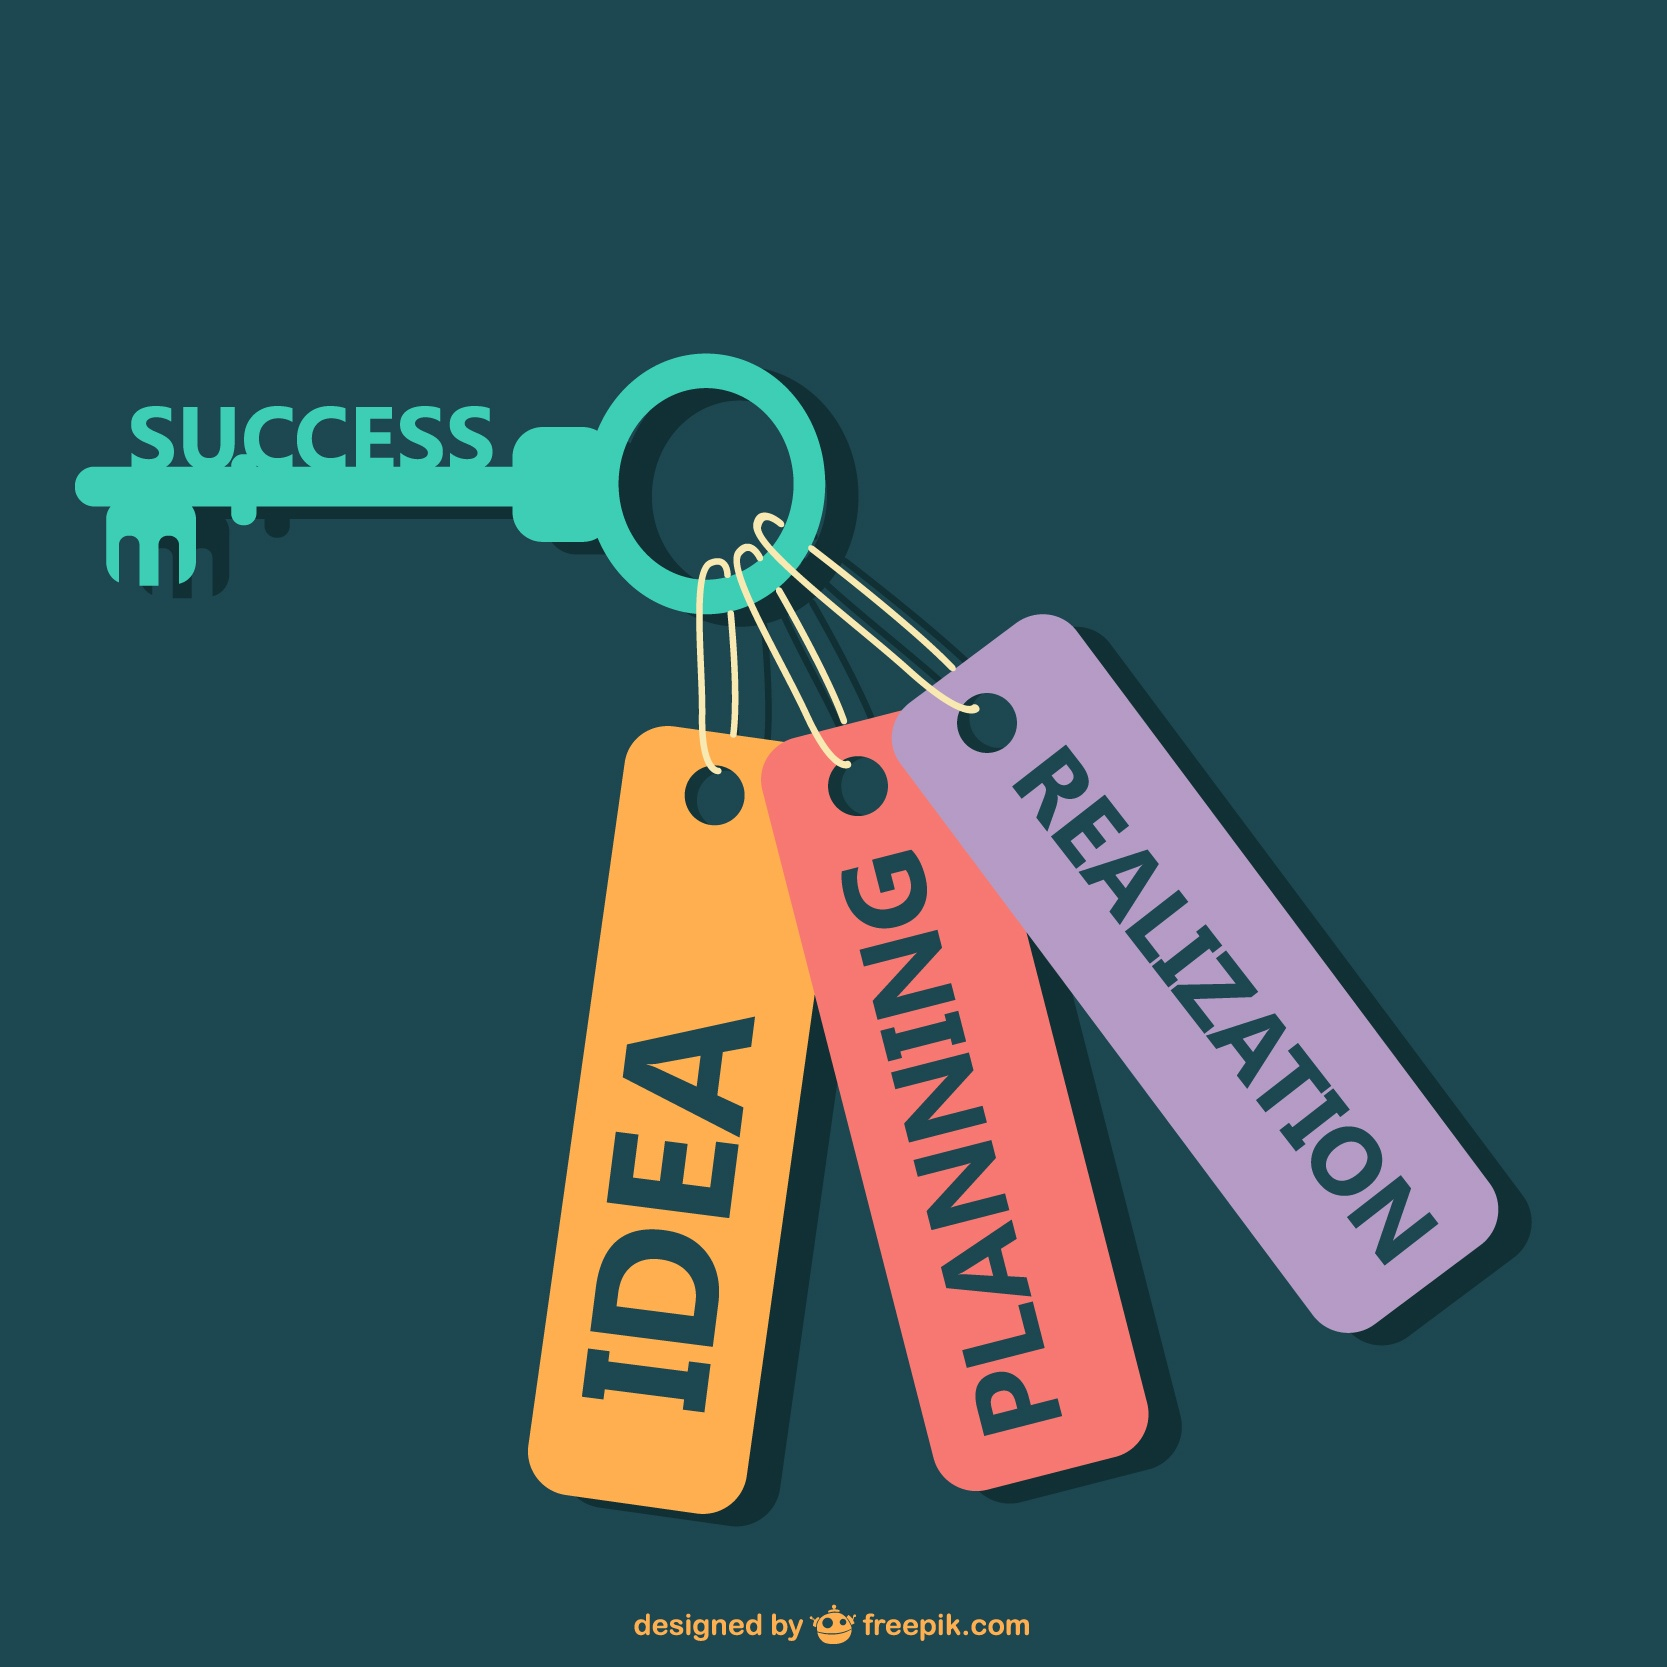 Success begins with planning.